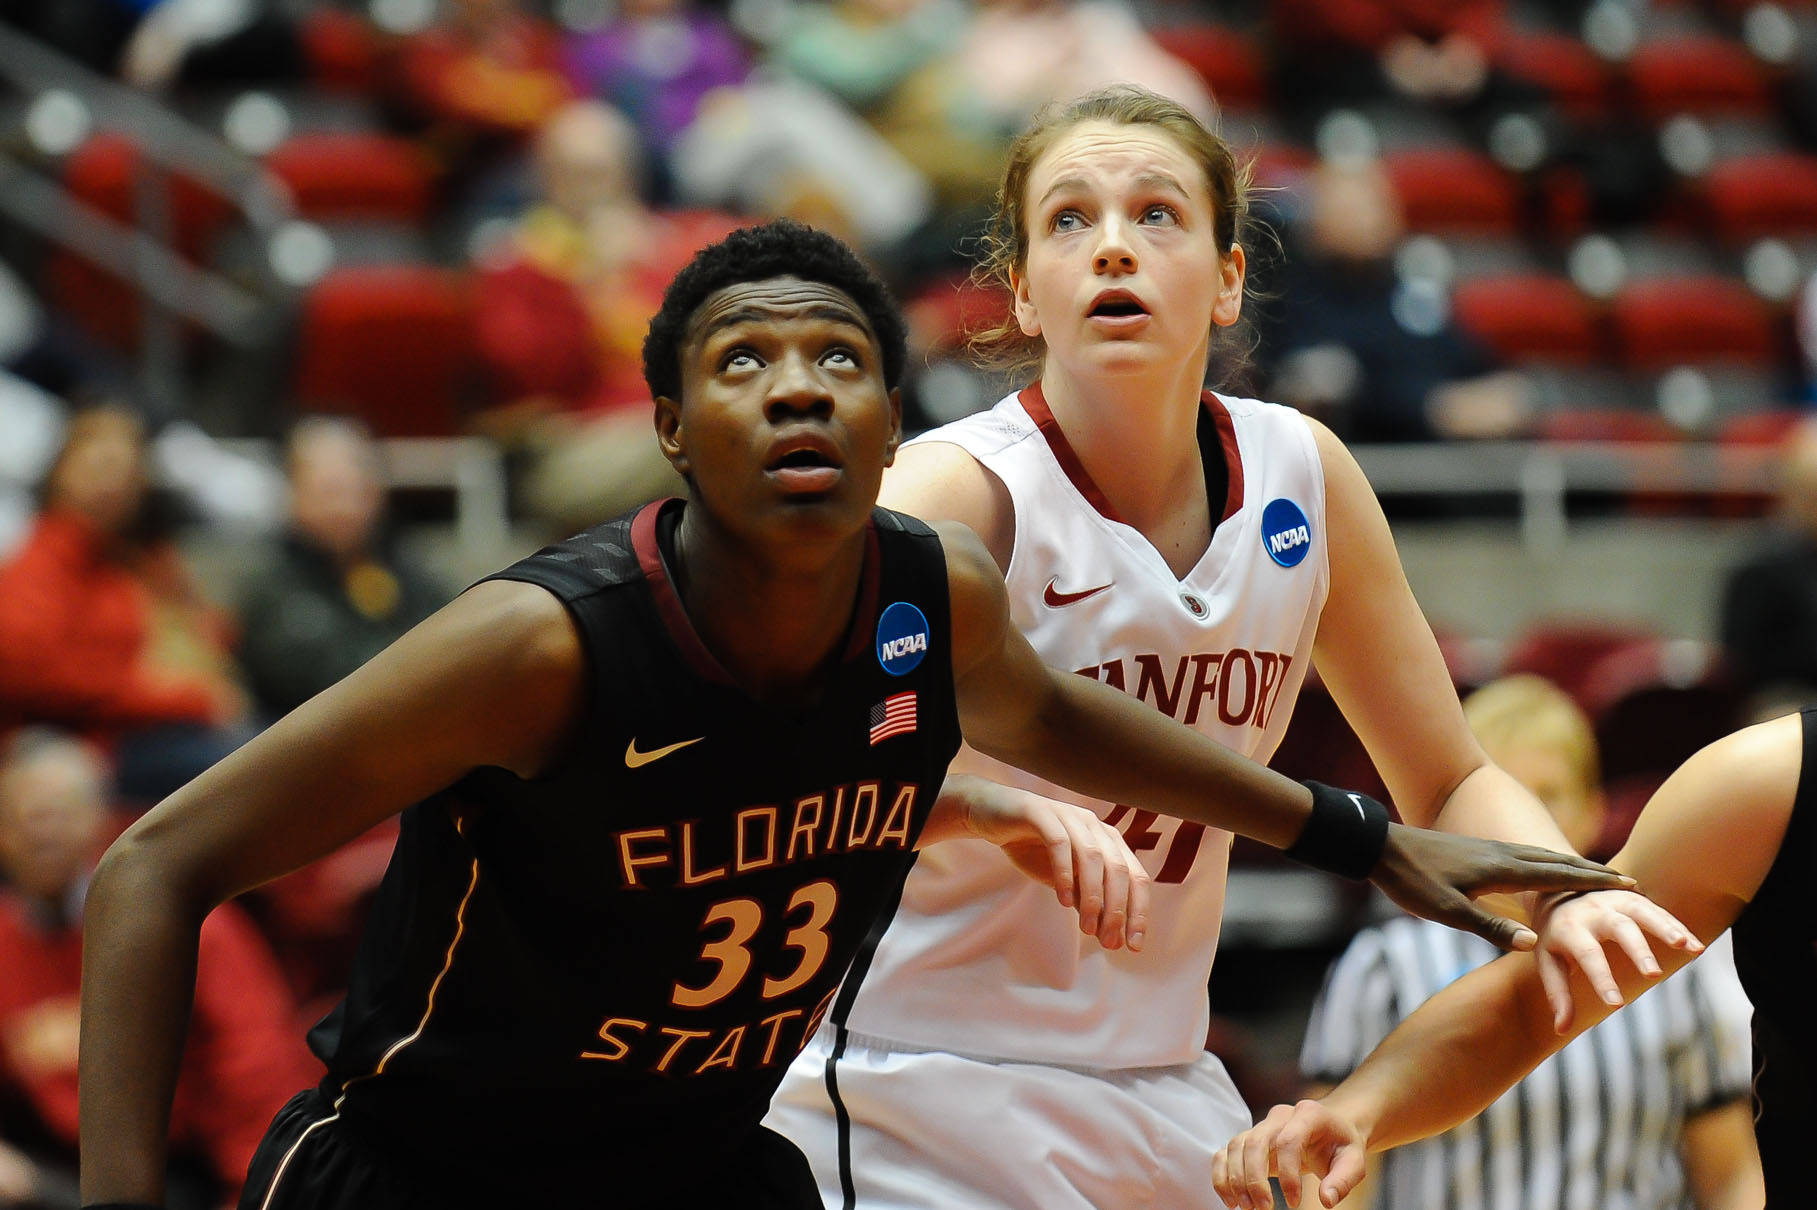 Mar 24, 2014; Ames, IA, USA; Florida State Seminoles forward Natasha Howard (33) and Stanford Cardinal forward Bonnie Samuelson (41) wait for a rebound in the second half of a women's college basketball game in the second round of the NCAA Tournament at James H. Hilton Coliseum. Stanford defeated Florida State 63-44. Mandatory Credit: Steven Branscombe-USA TODAY Sports